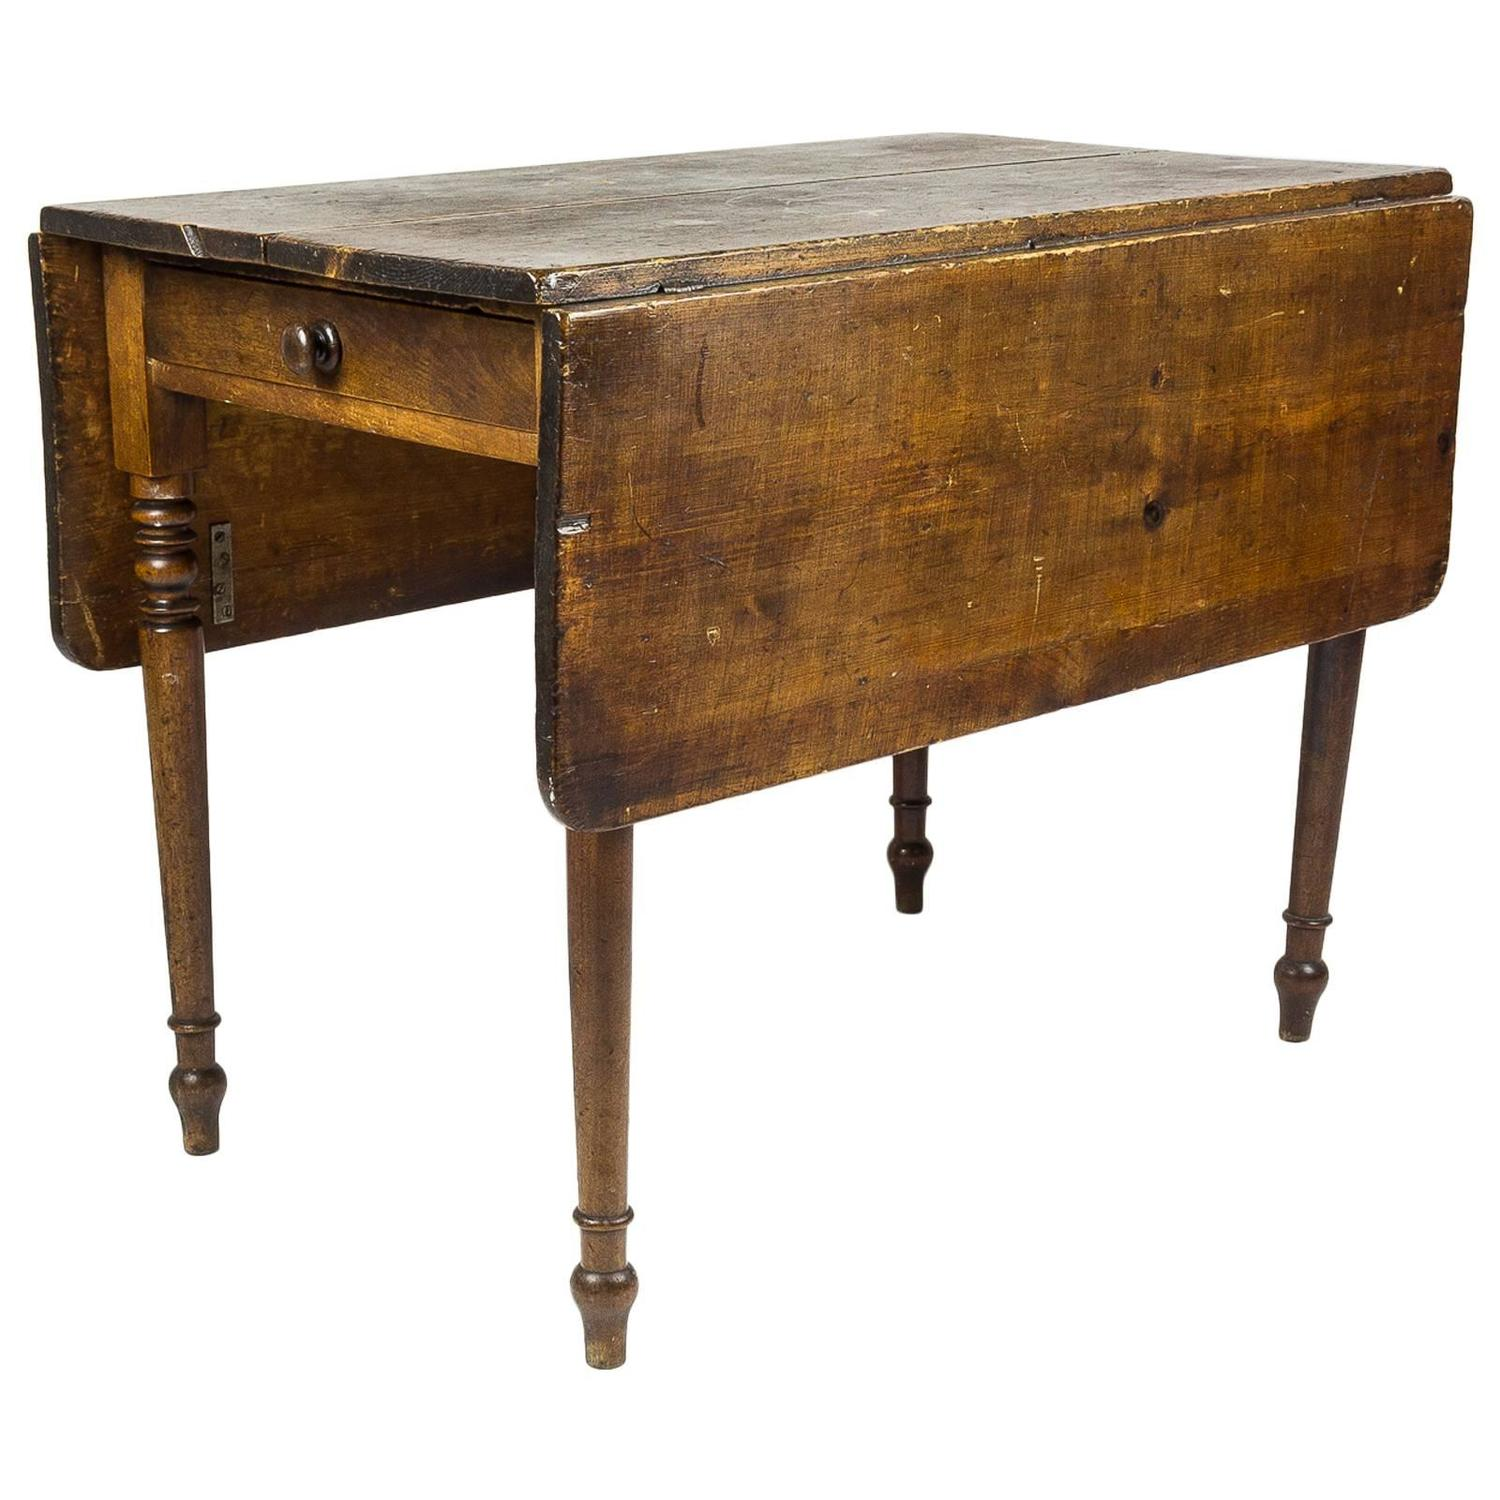 edwardian drop leaf kitchen table at 1stdibs